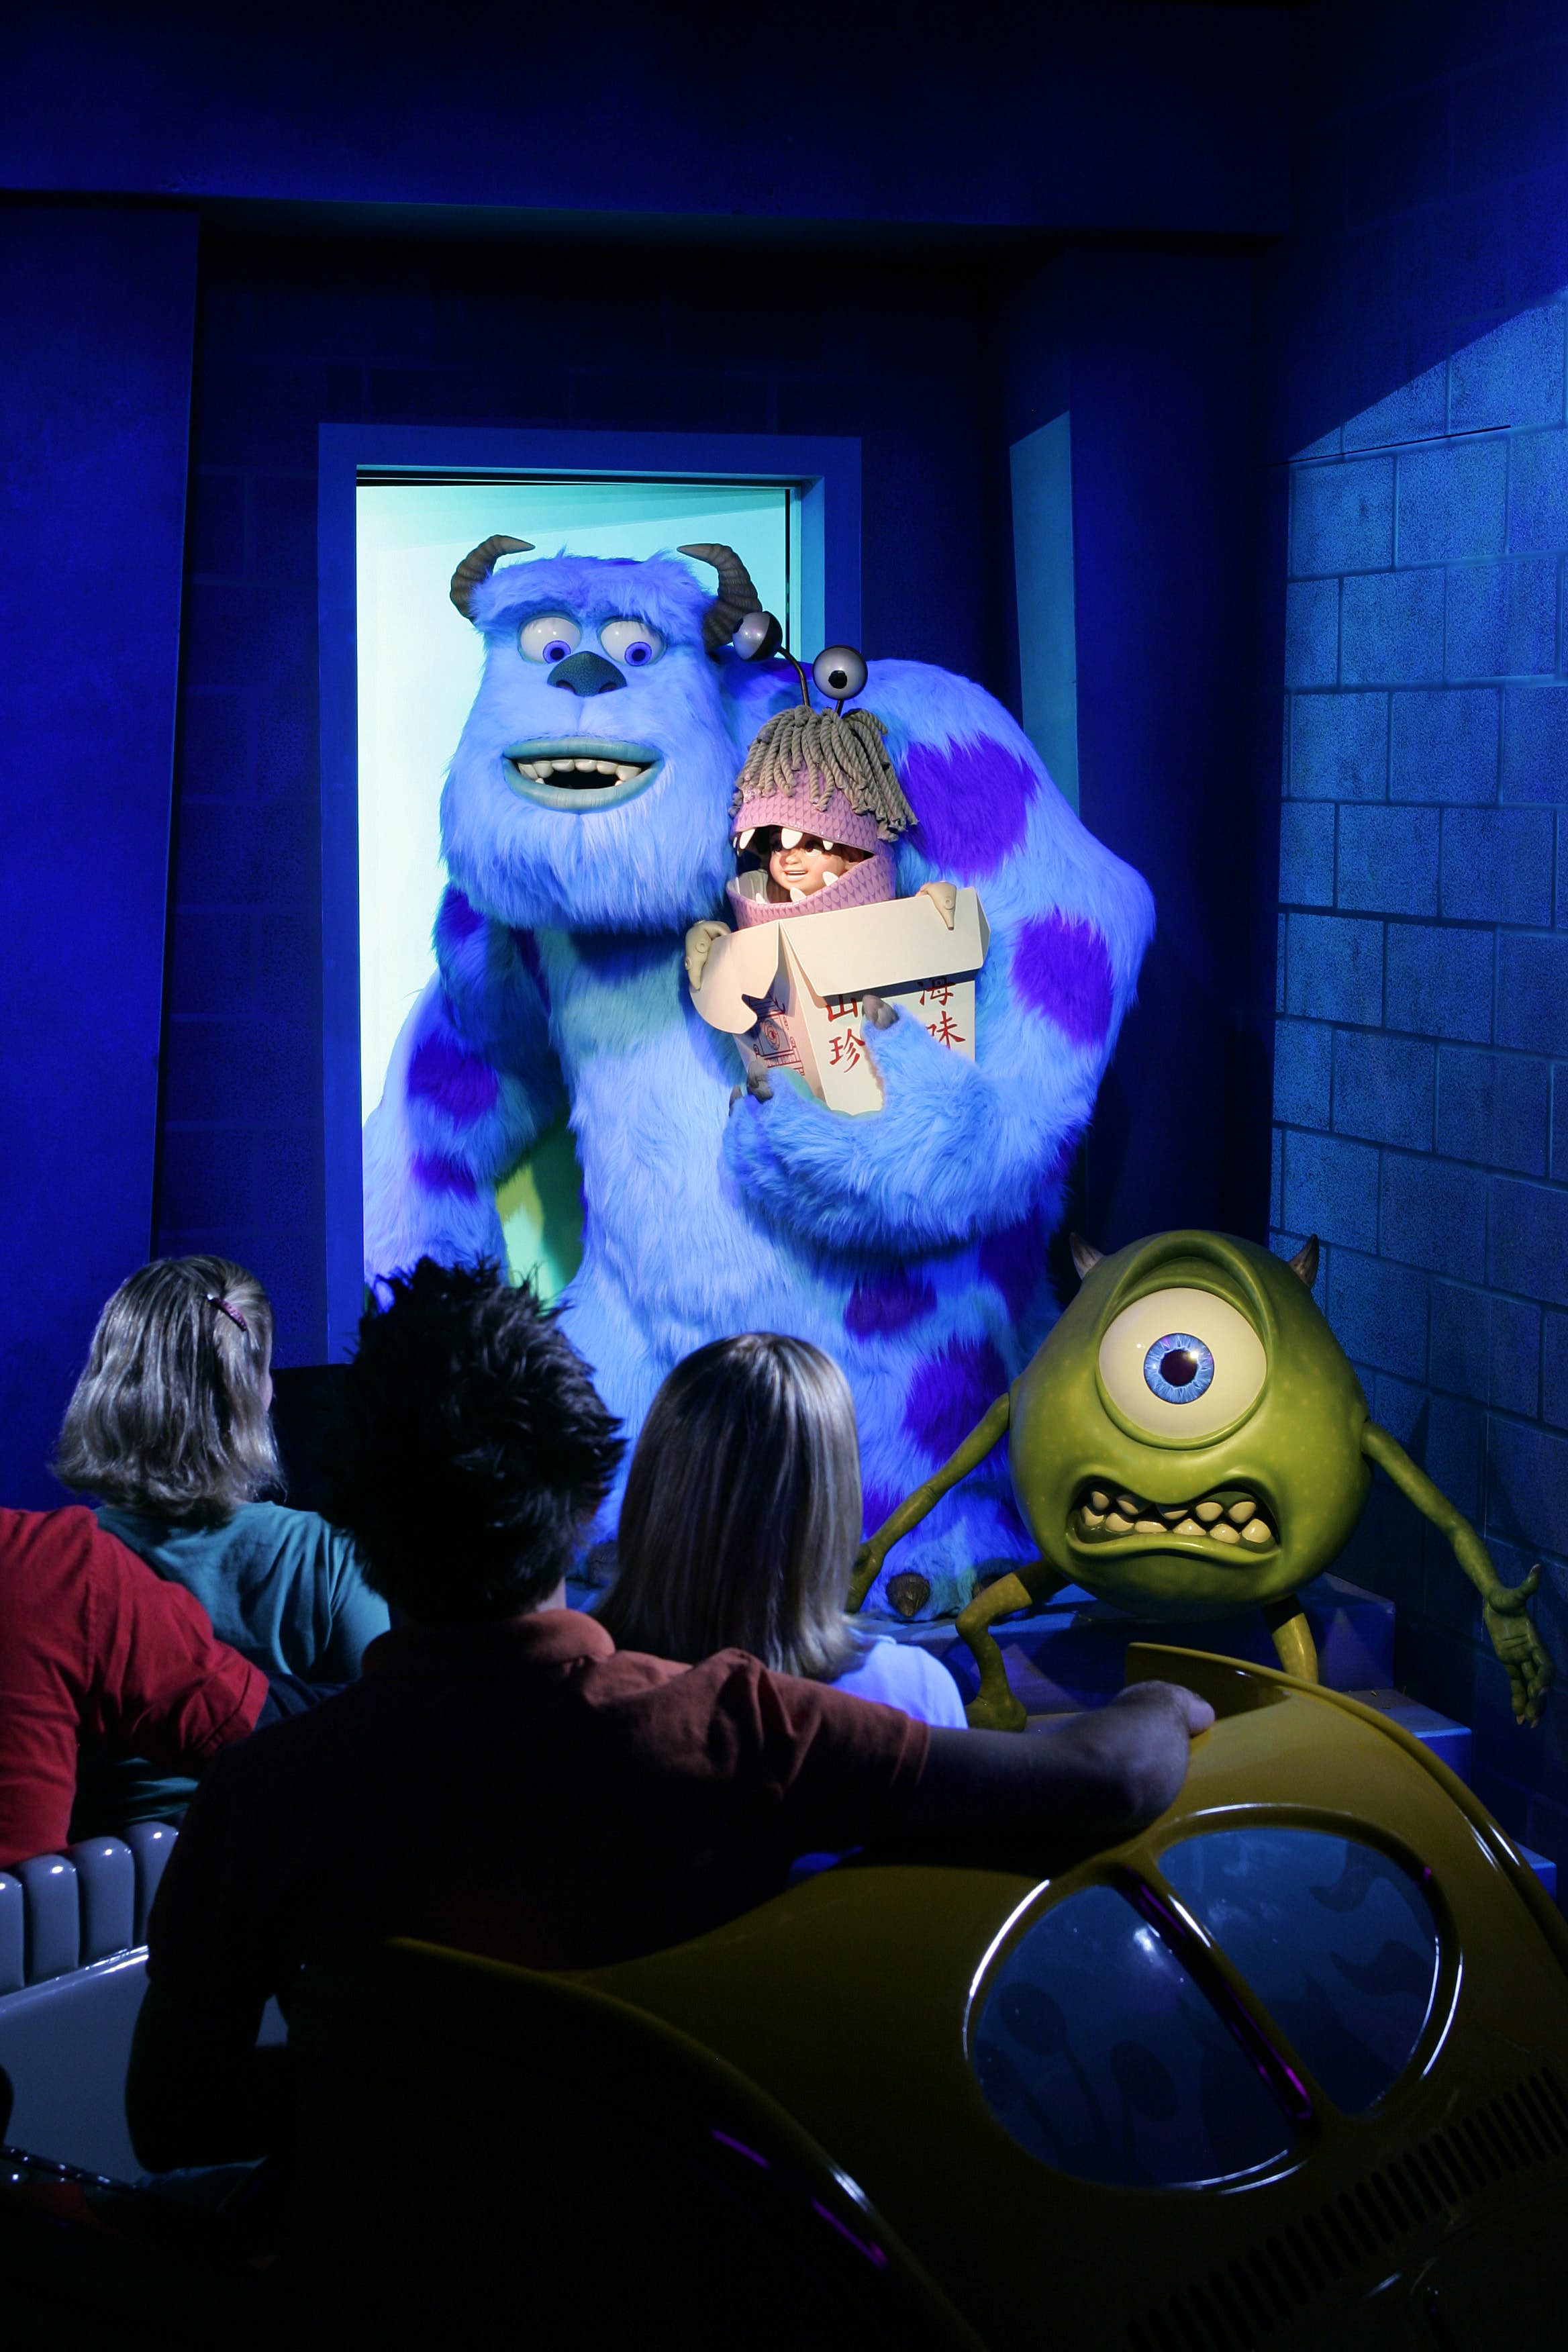 Animatronics of Mike, Sulley and Boo with guests in the foreground looking up at them